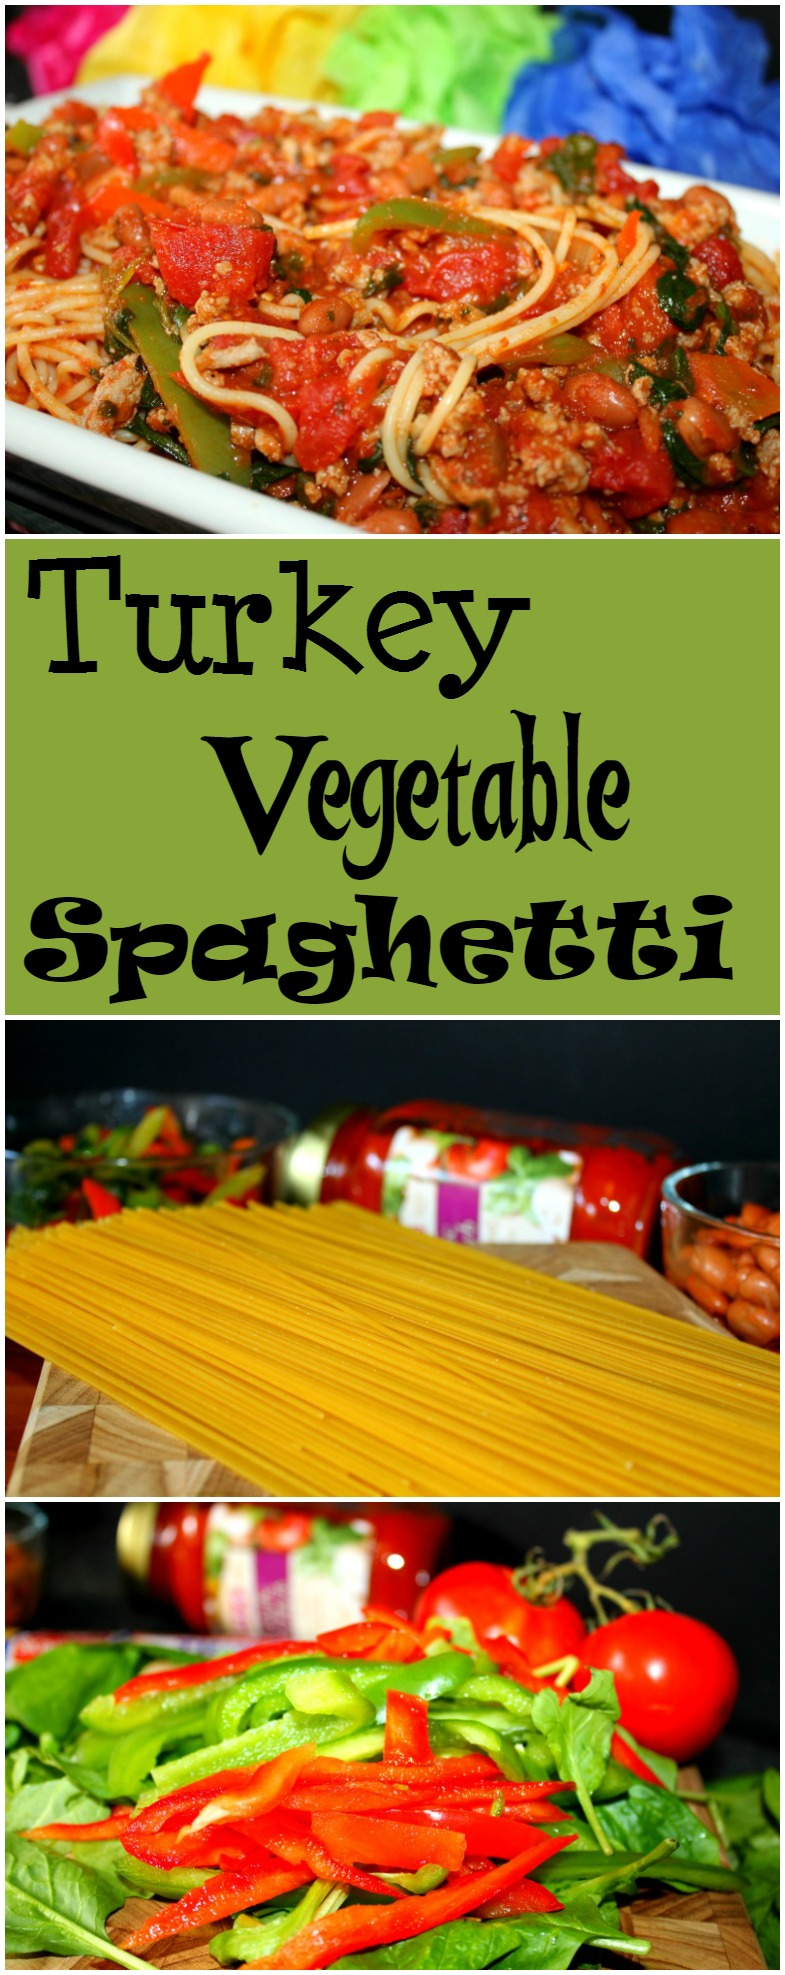 Turkey Vegetable Spaghetti is Full of Delicious Vegetables